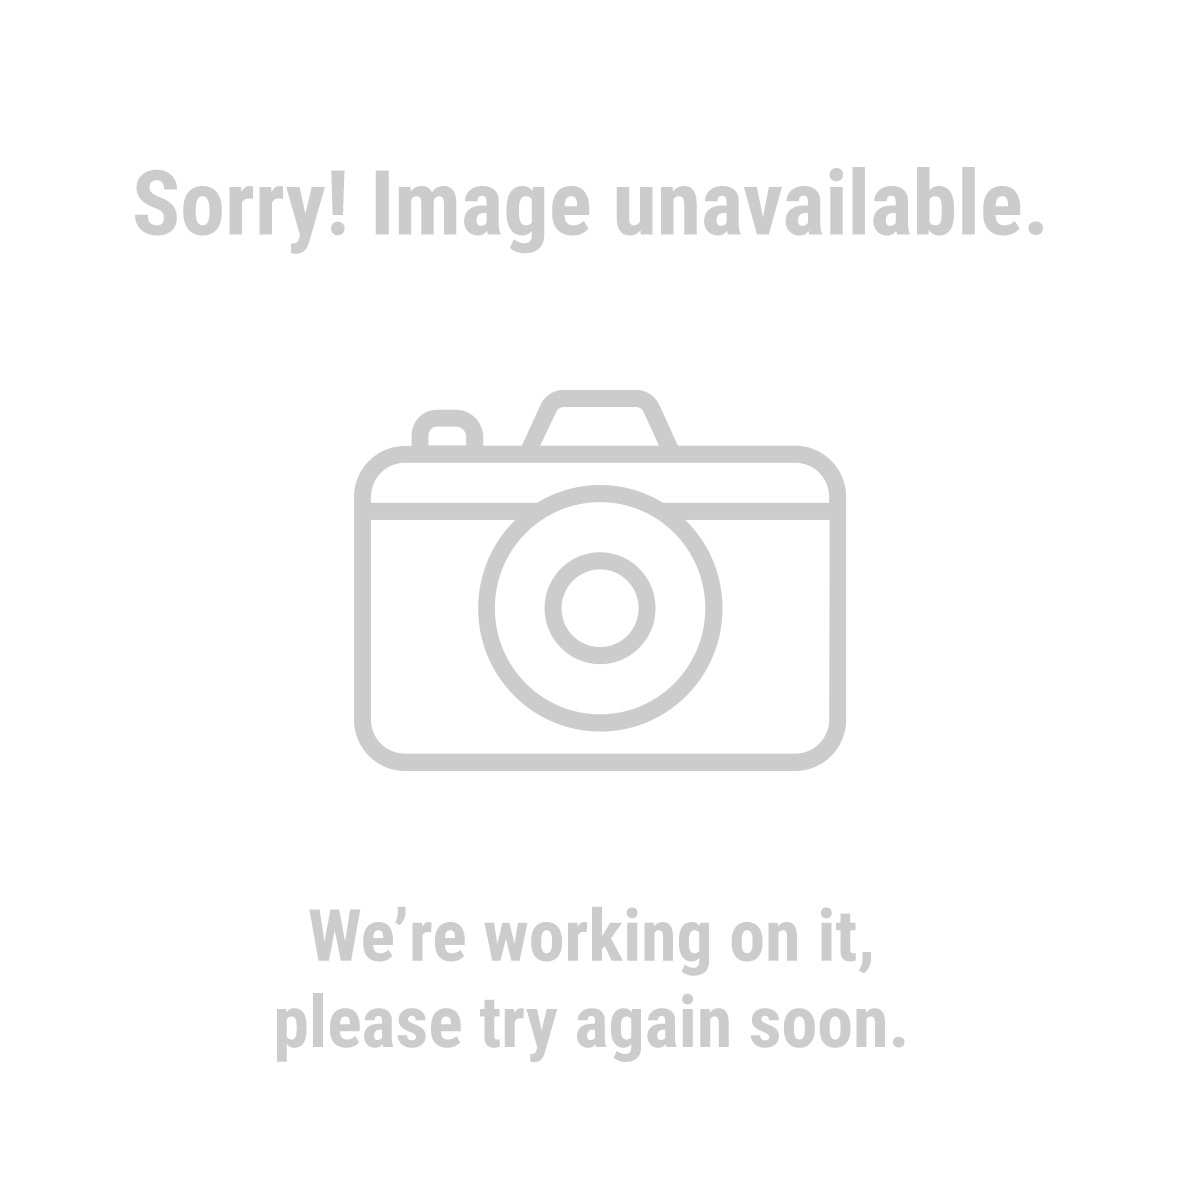 HFT 61763 5 ft 6 in. x 7 ft. 6 in. Camouflage All Purpose/Weather Resistant Tarp